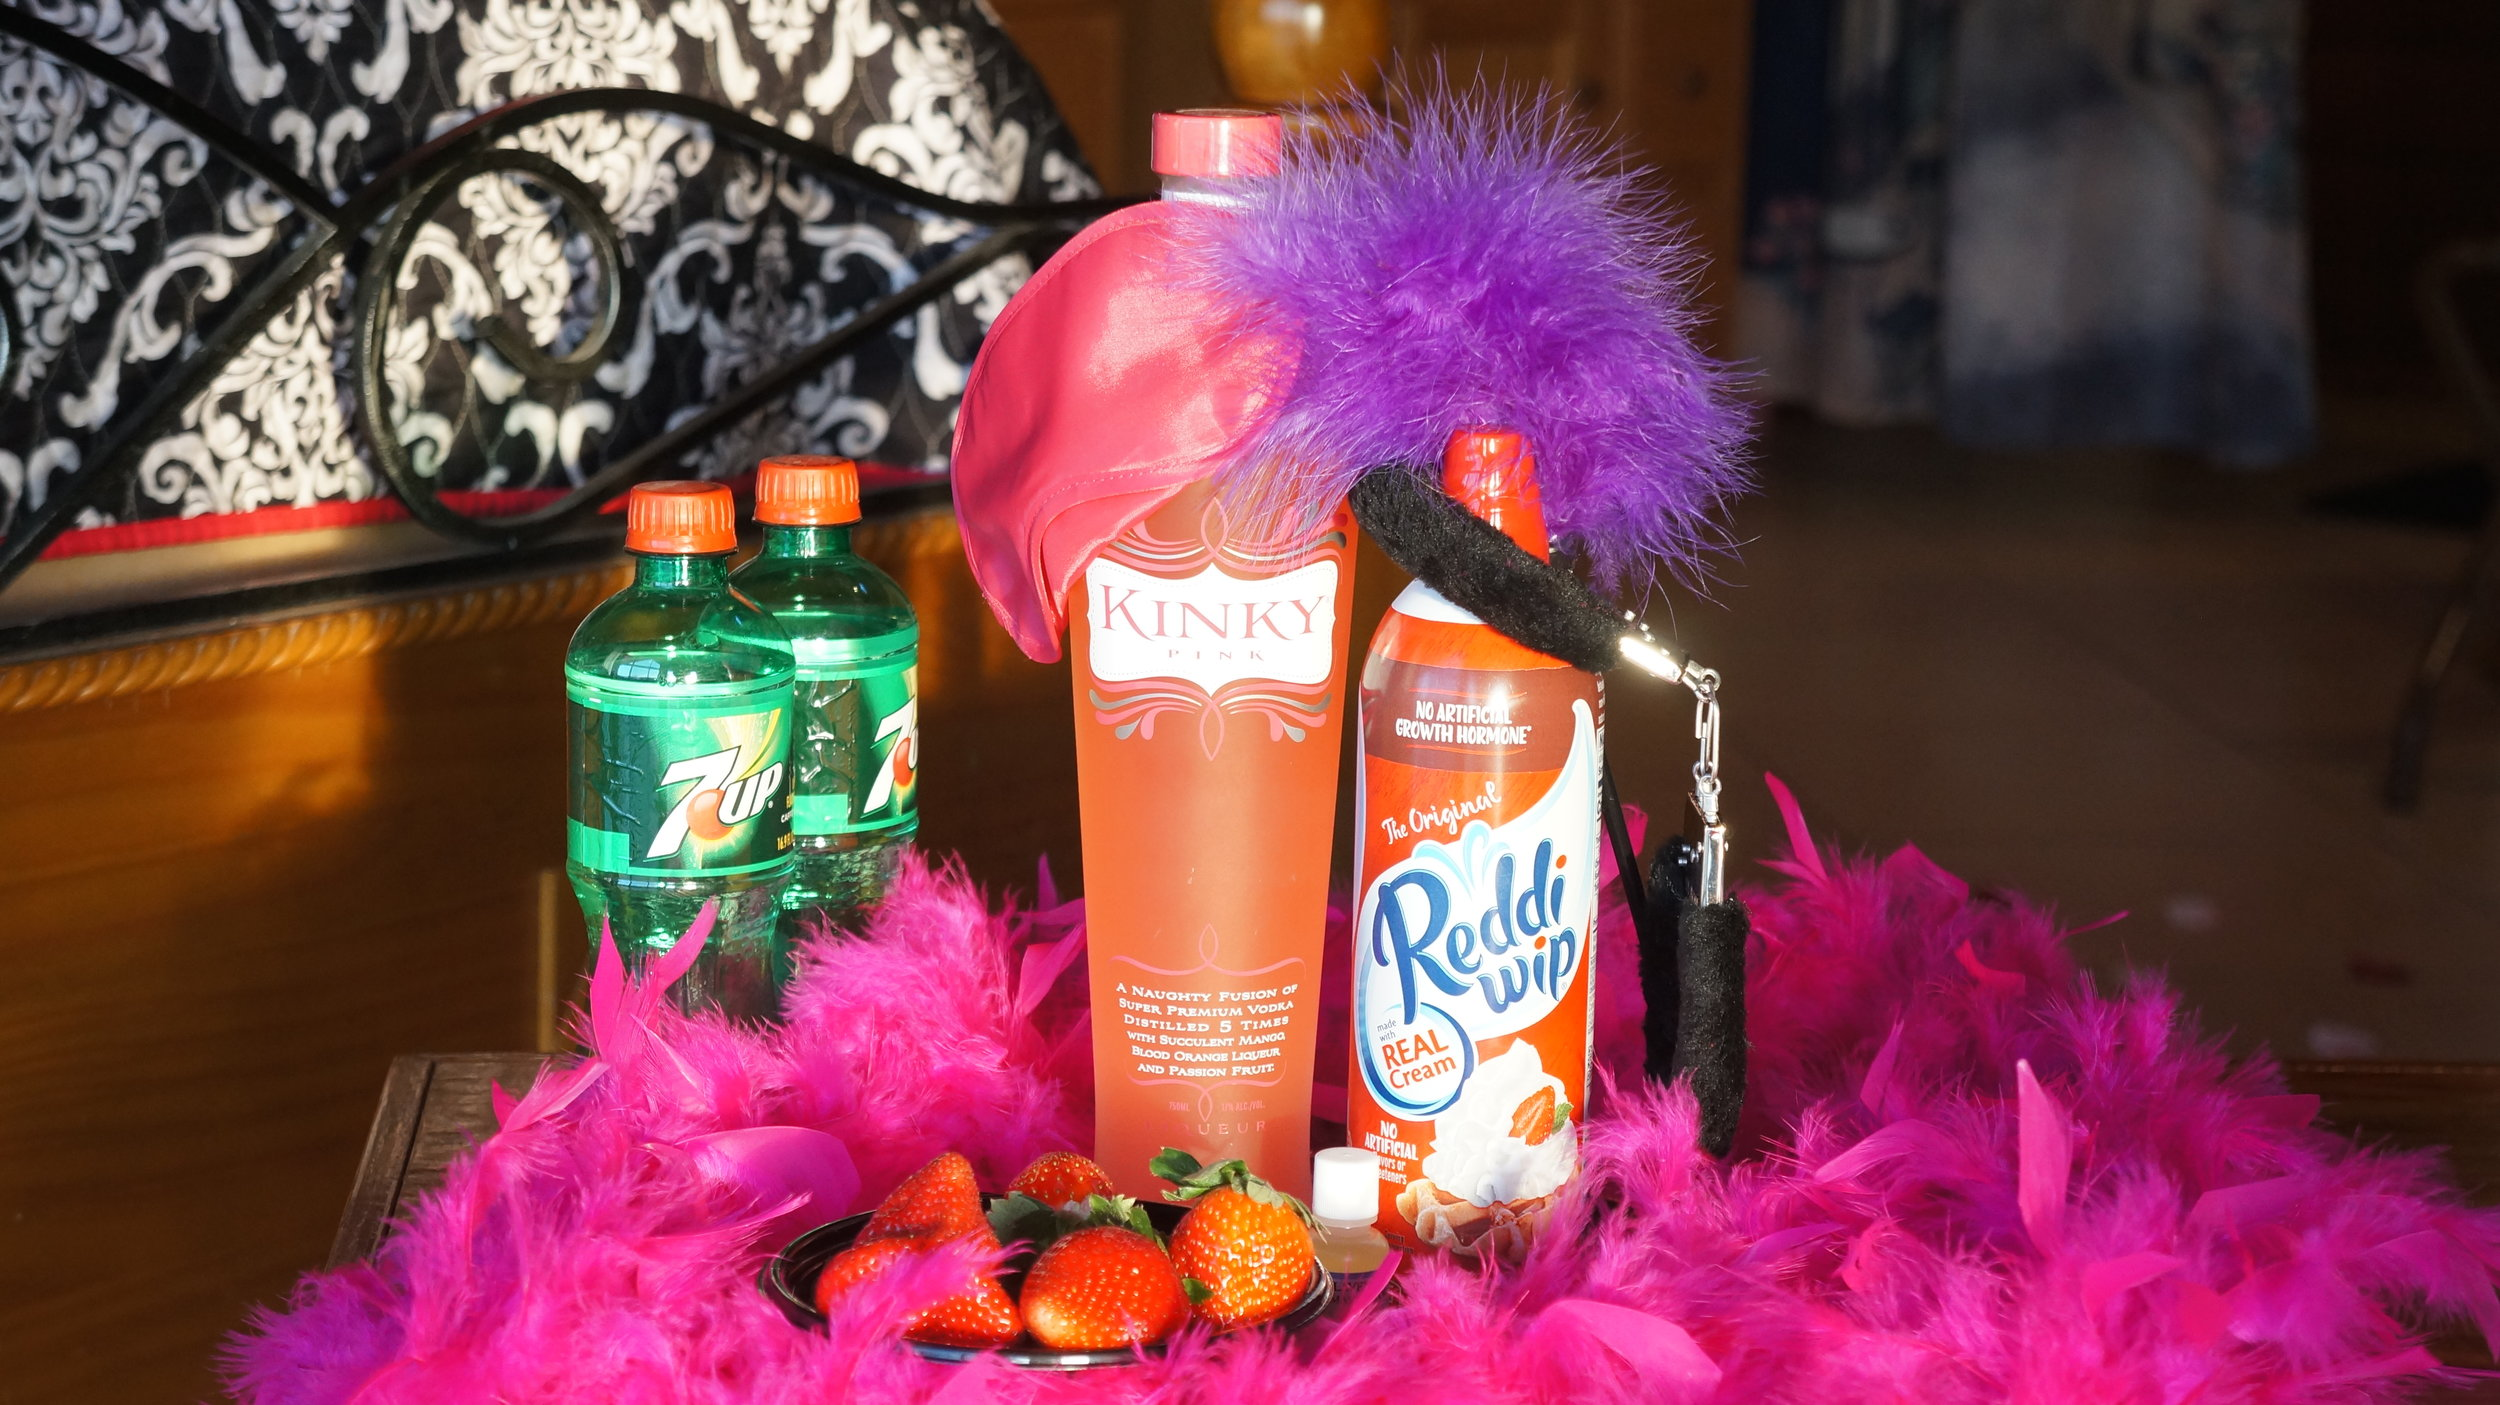 The Kinky Package available at Serenity Springs.